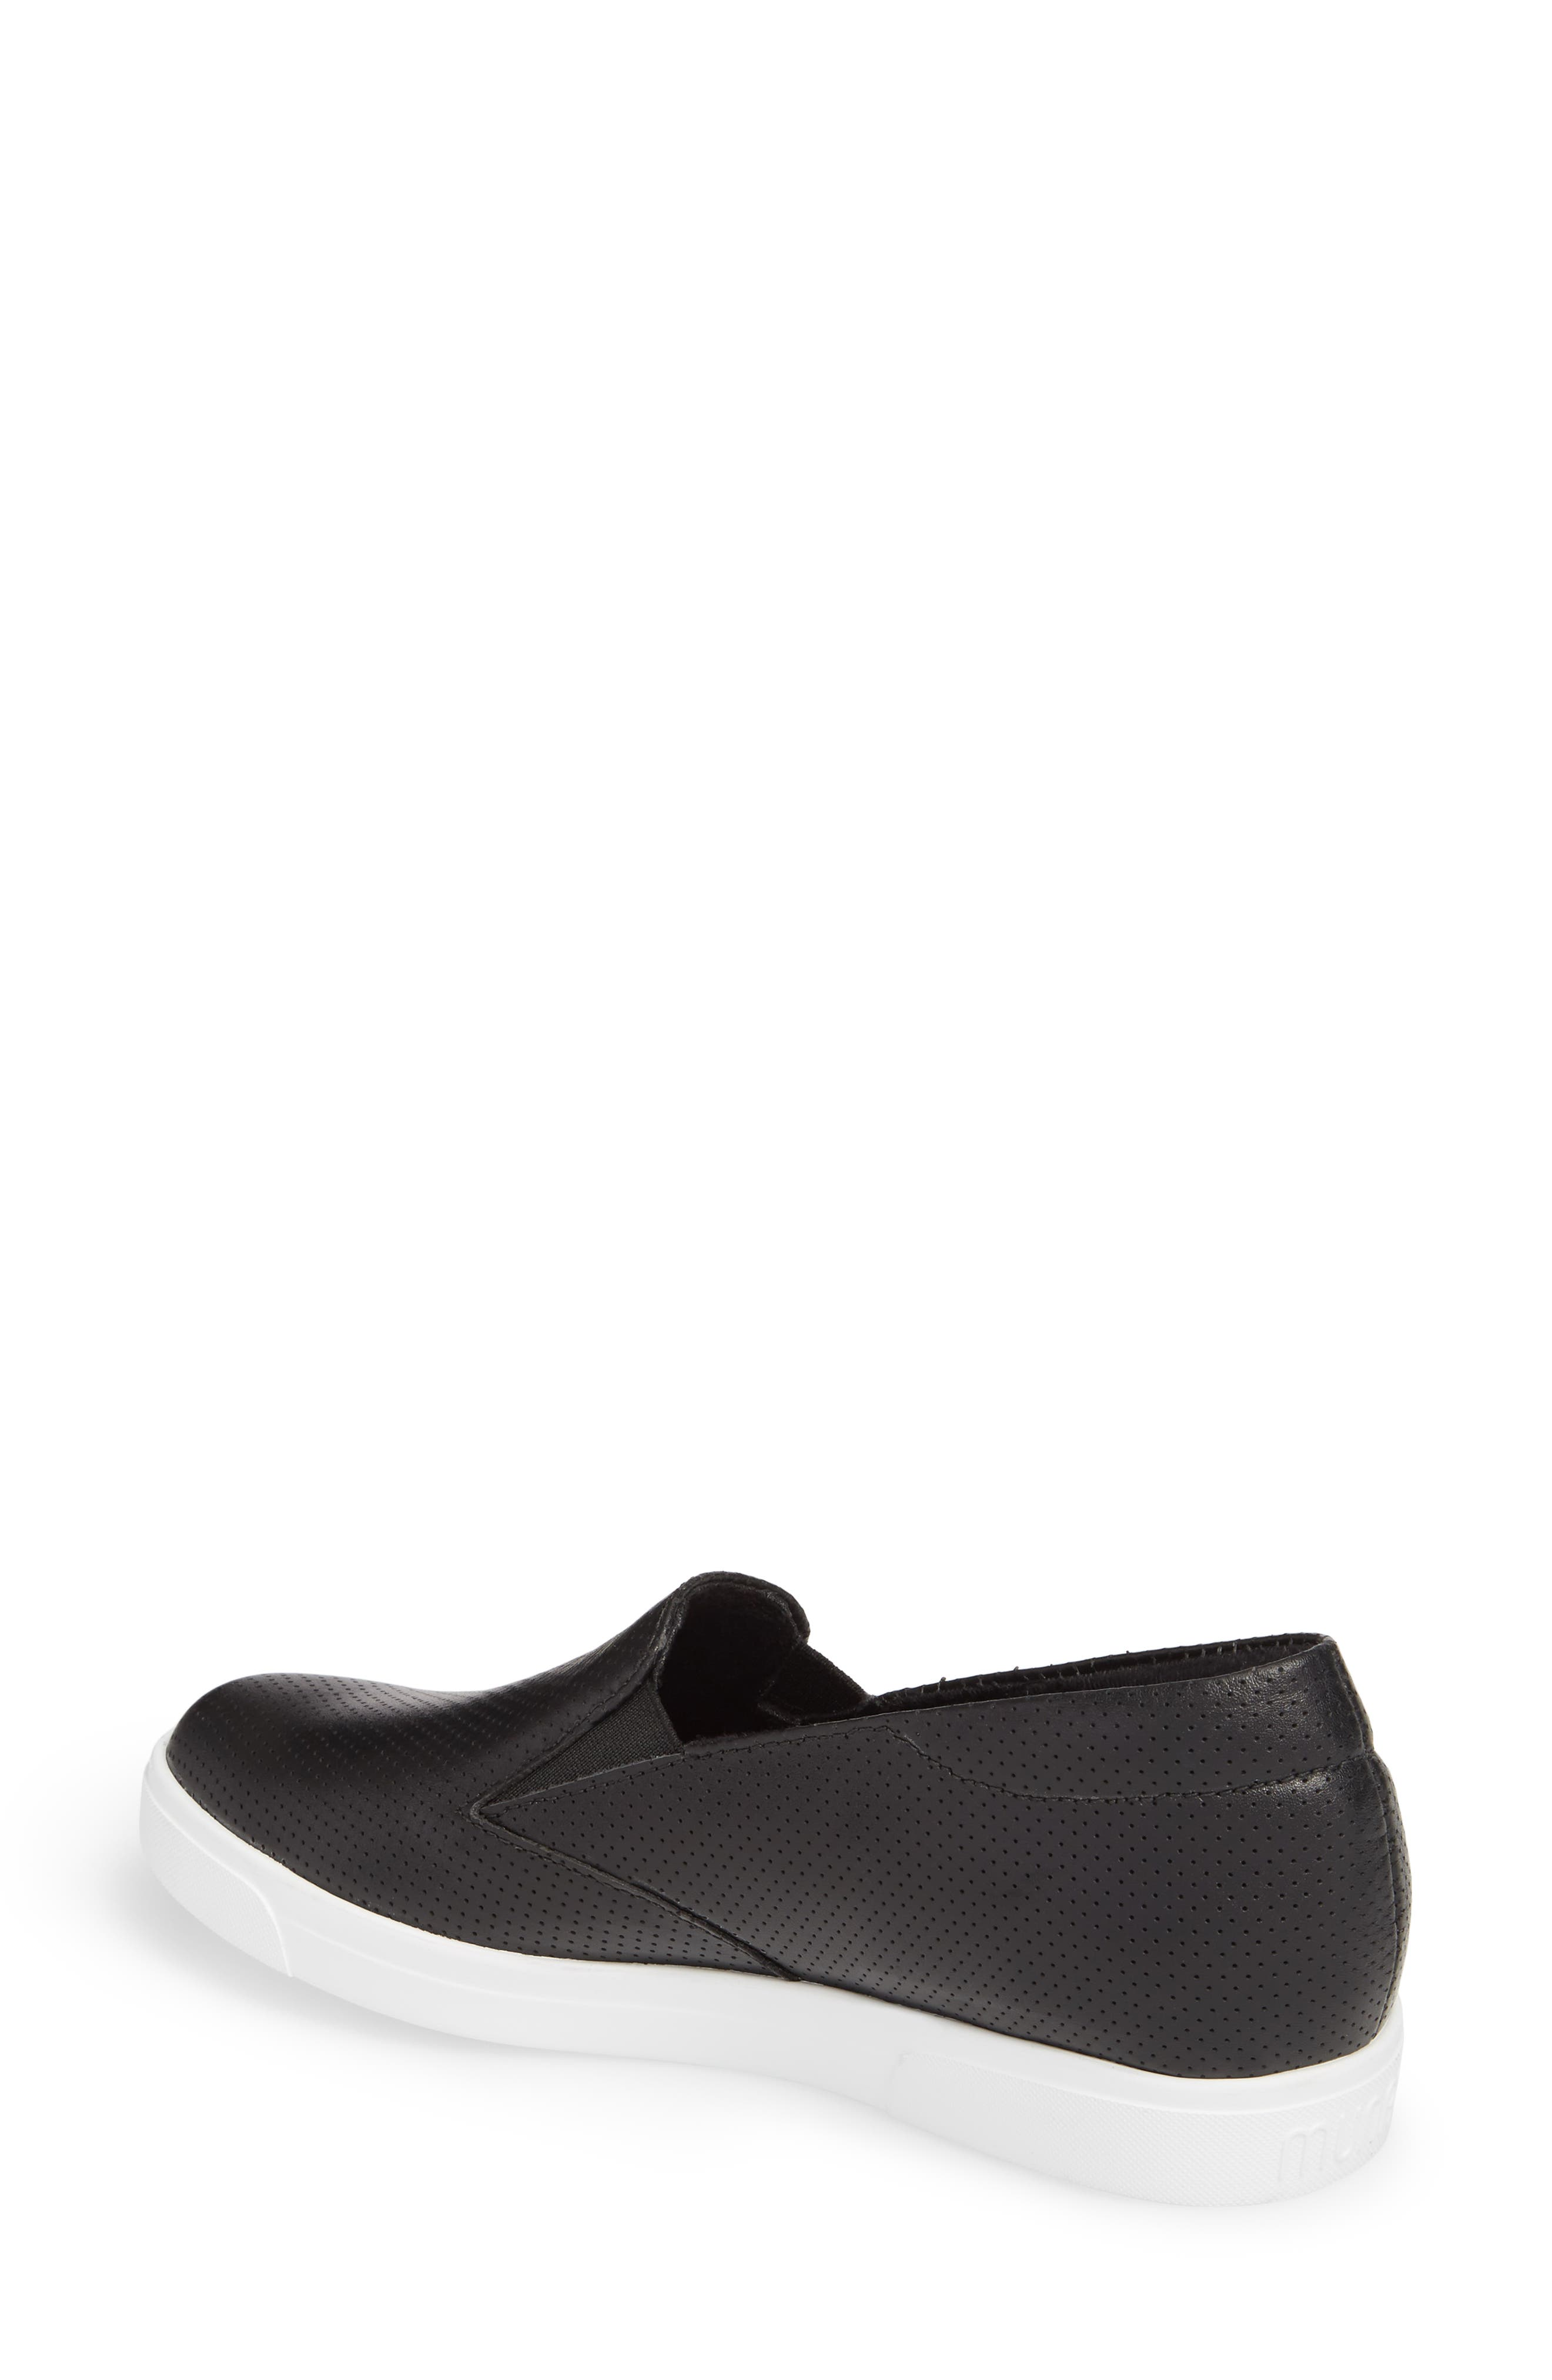 Lulu Slip-On Sneaker,                             Alternate thumbnail 2, color,                             002